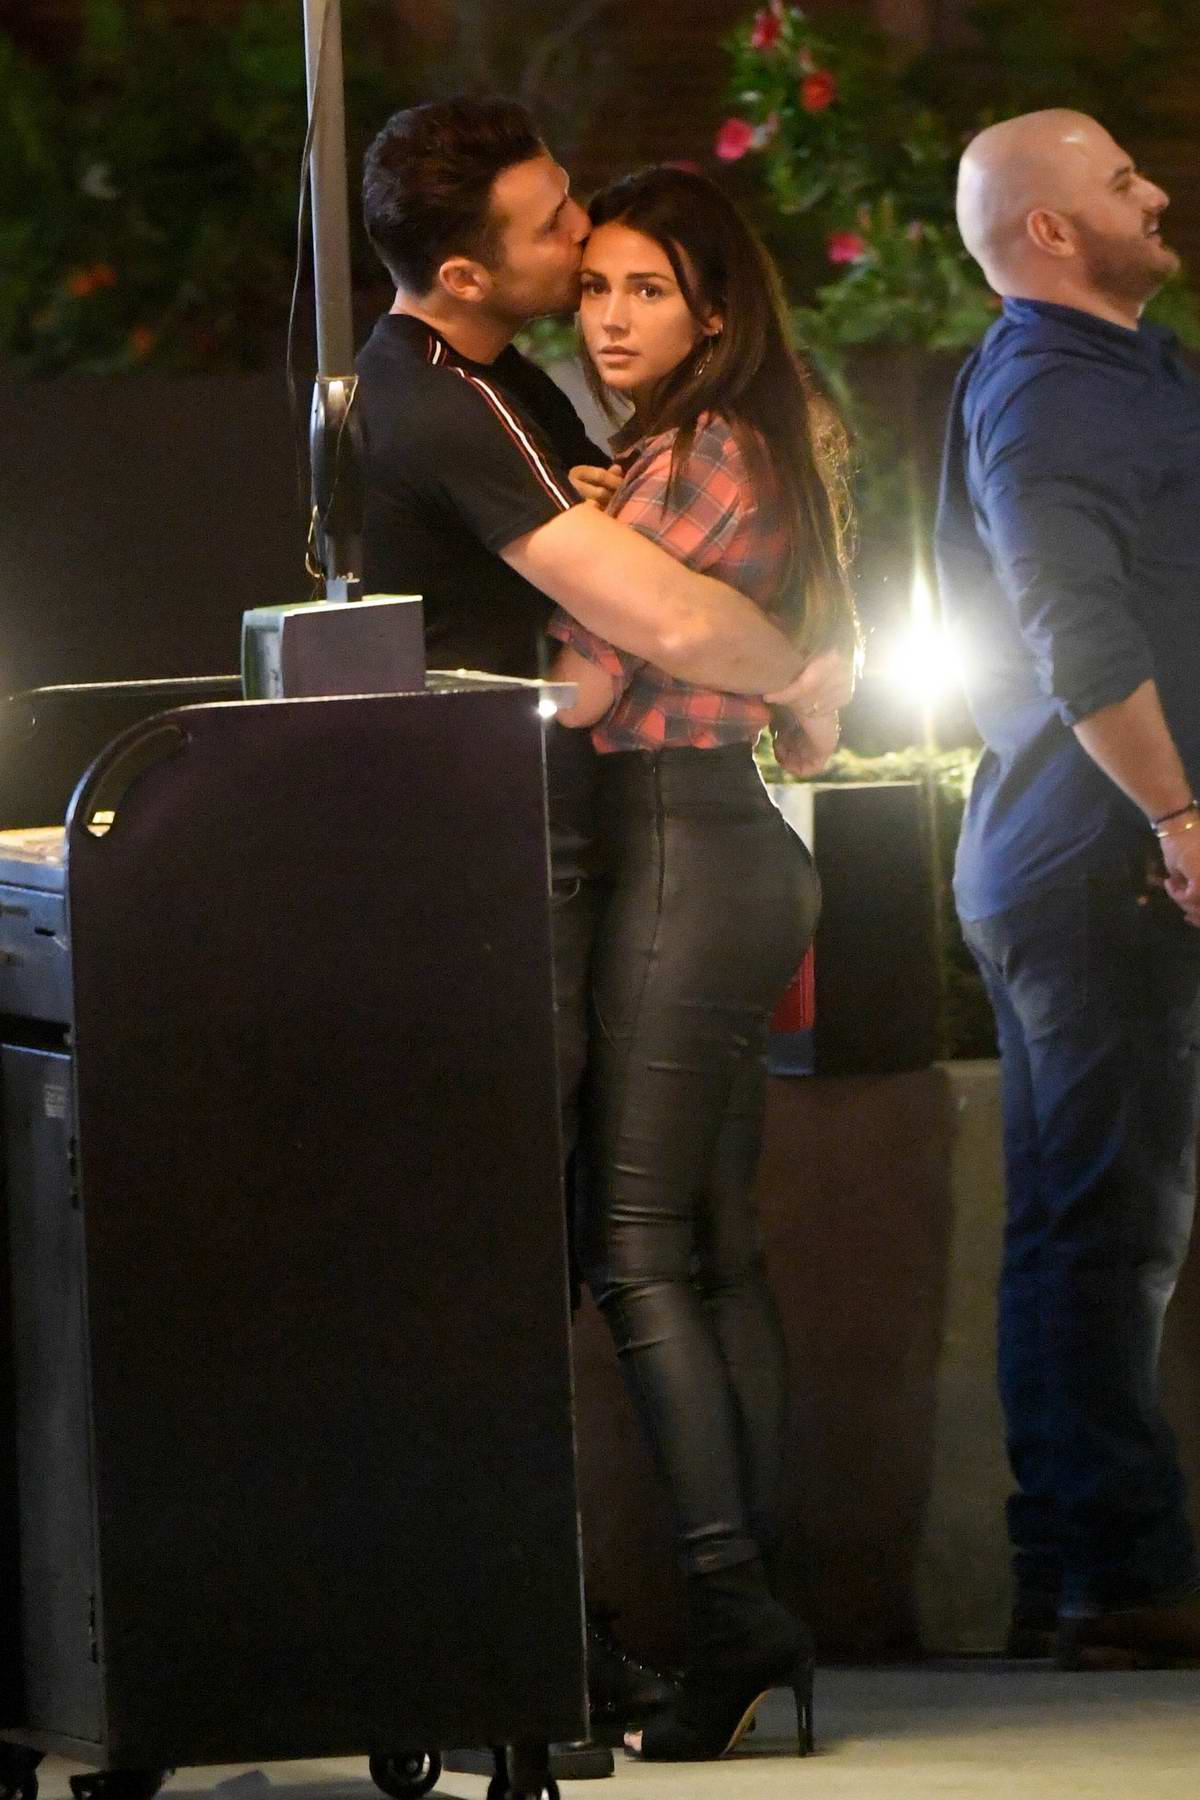 Michelle Keegan And Mark Wright Share A Kiss While Waiting At The Valet After Dinner In